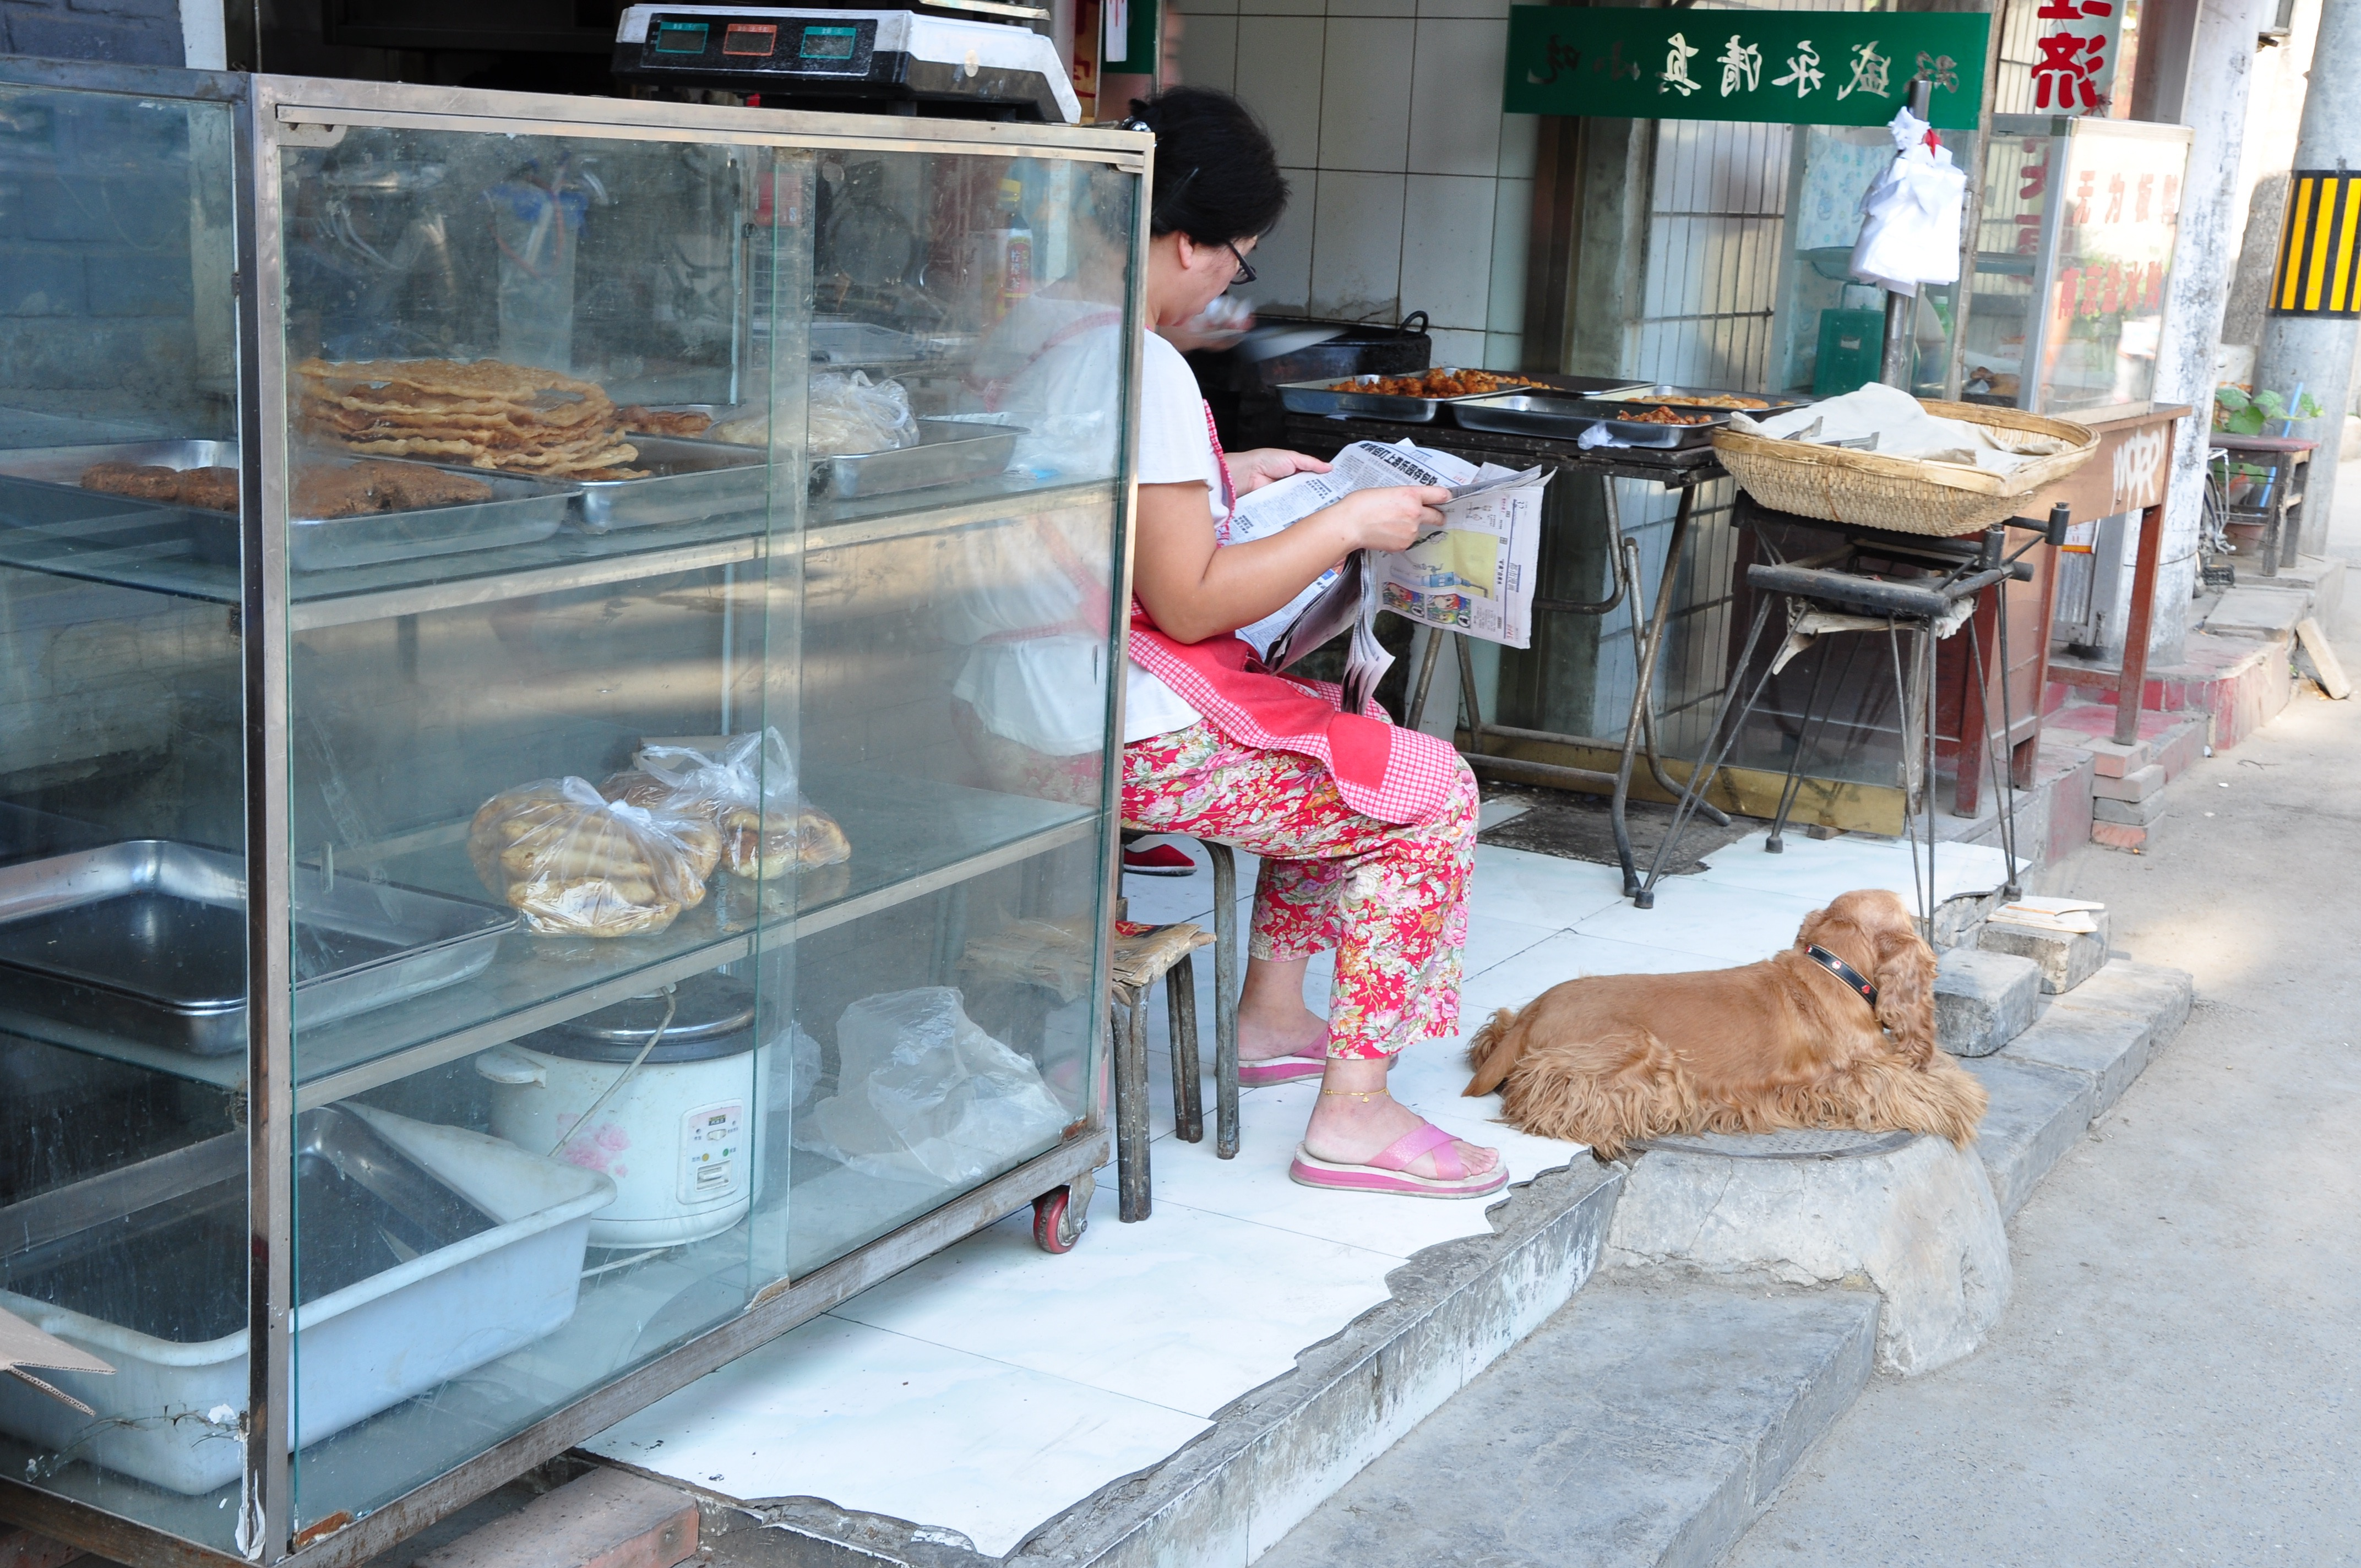 Dogs as pets in China